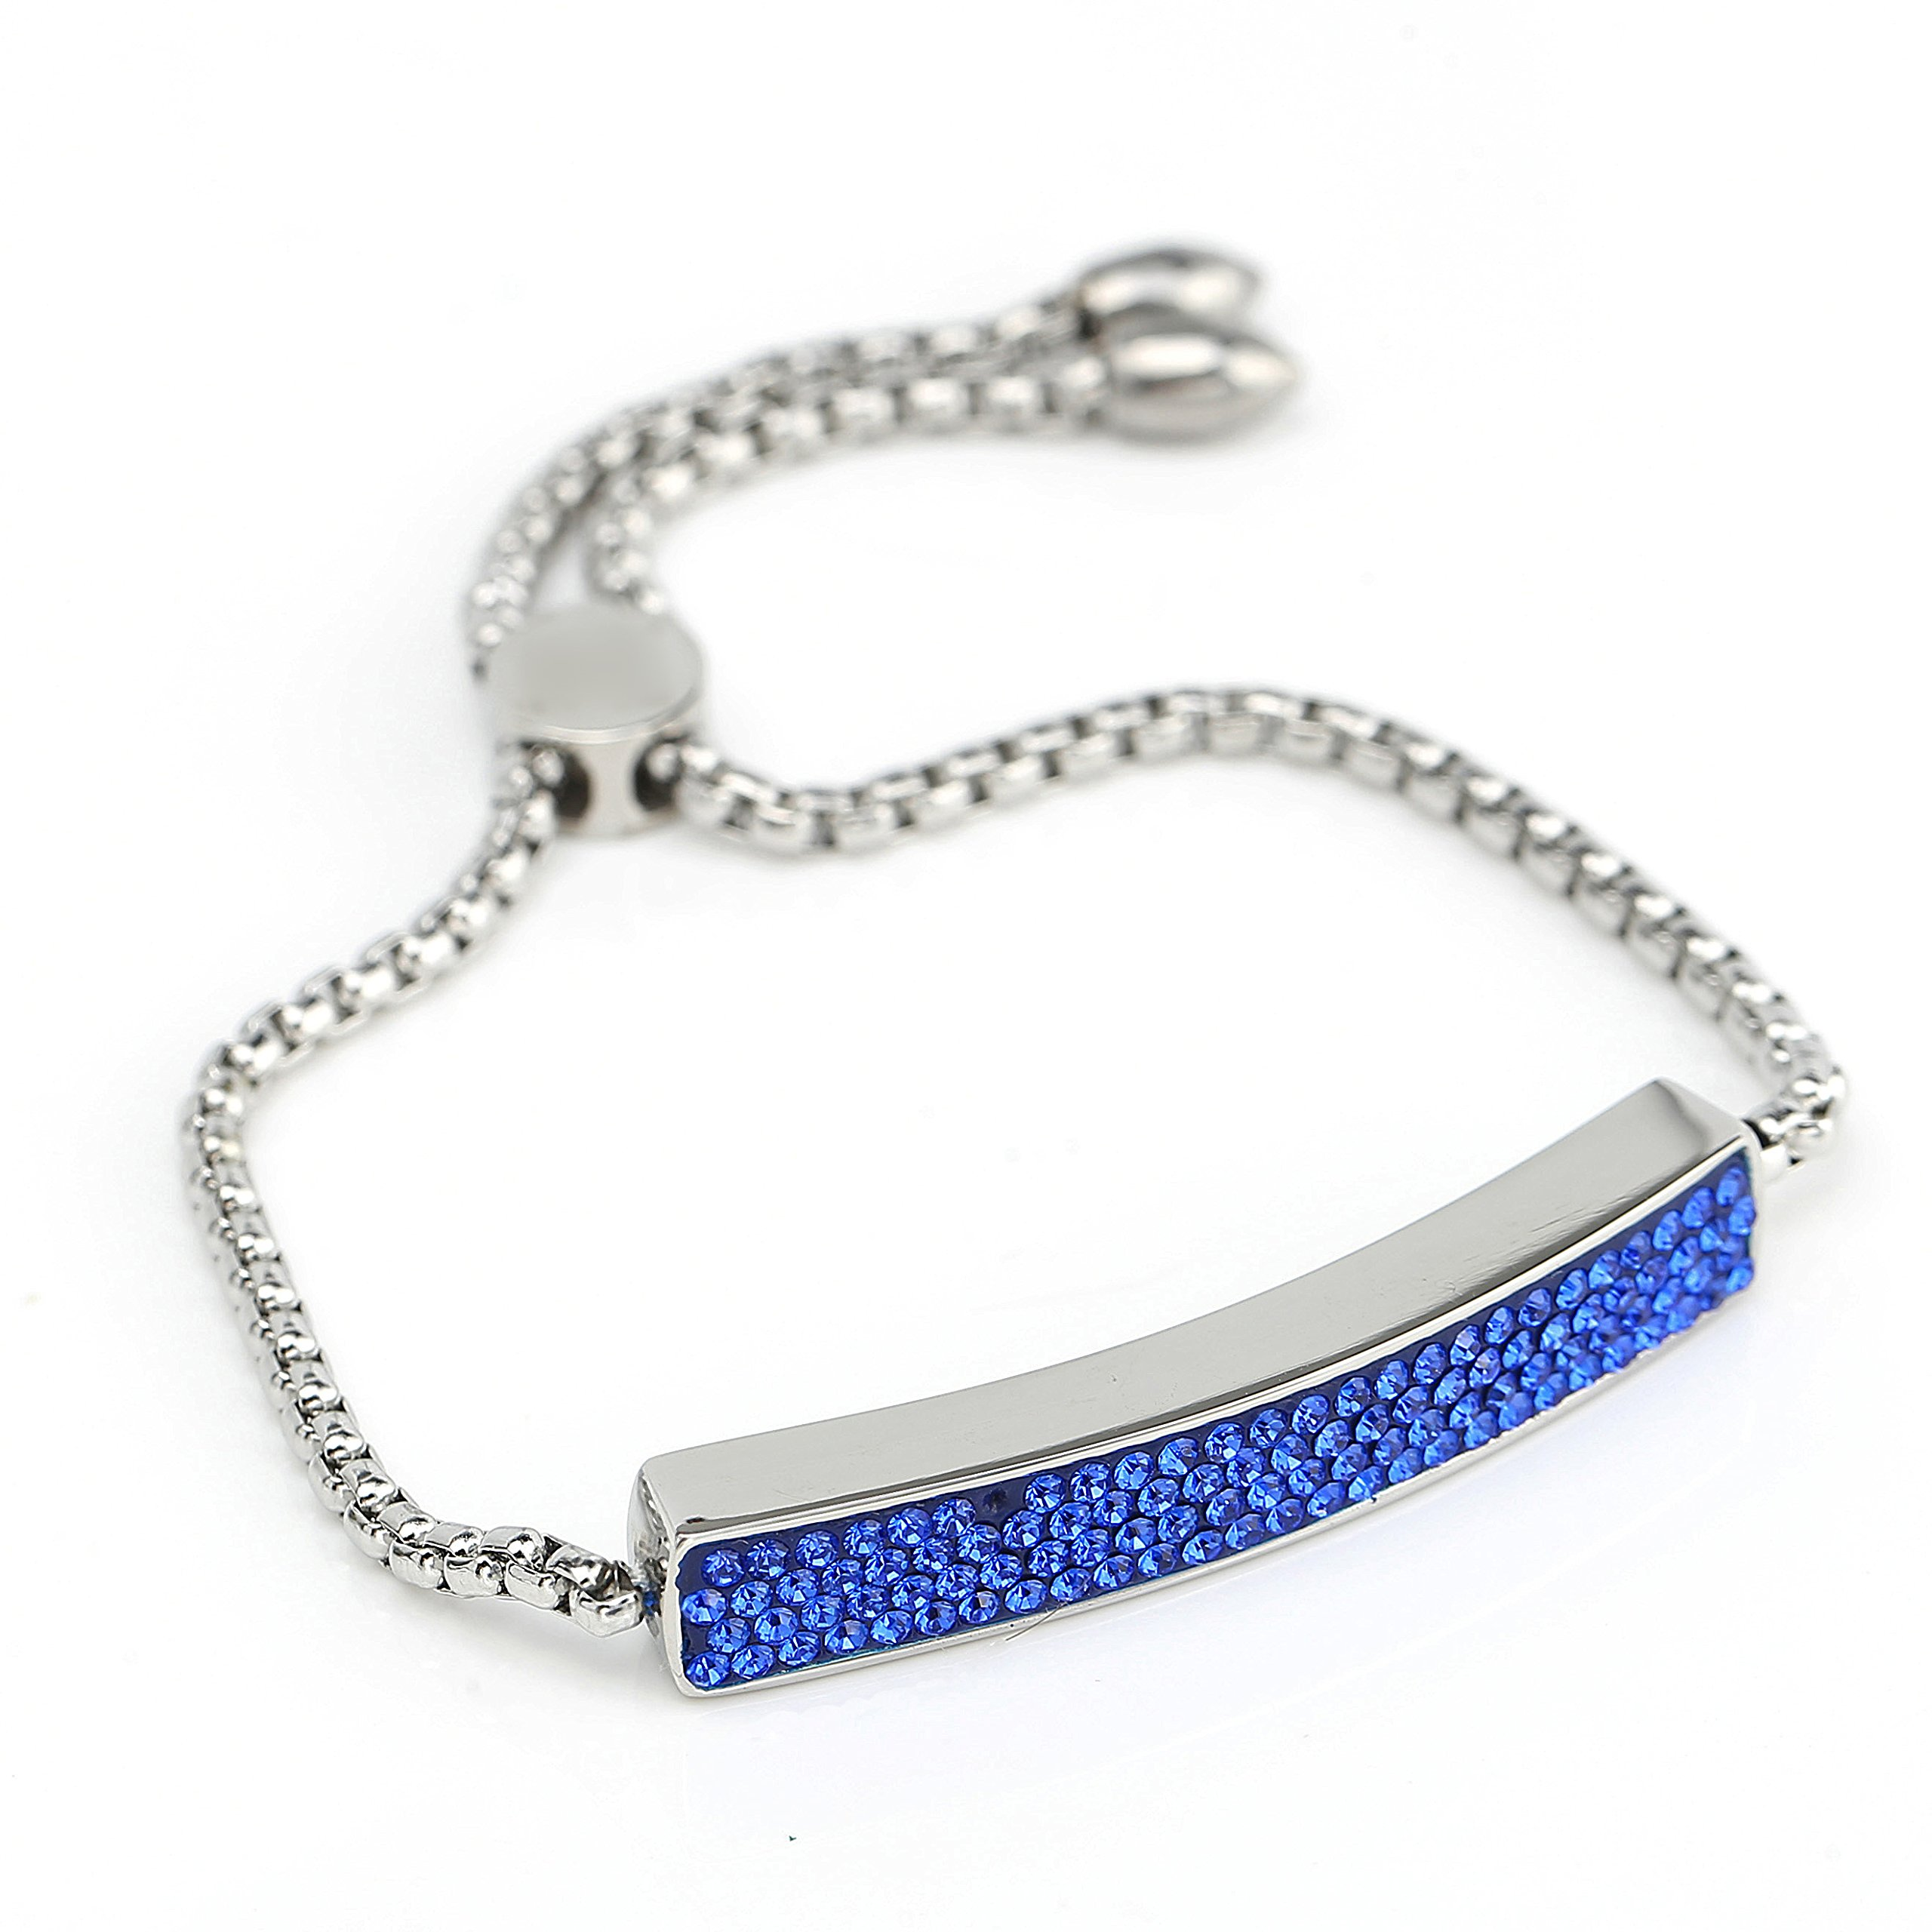 United Elegance Stylish Designer Bar Bracelet with Exquisite, Sparkling Sapphire Blue Embedded Swarovski Style Crystals and Adjustable Bolo